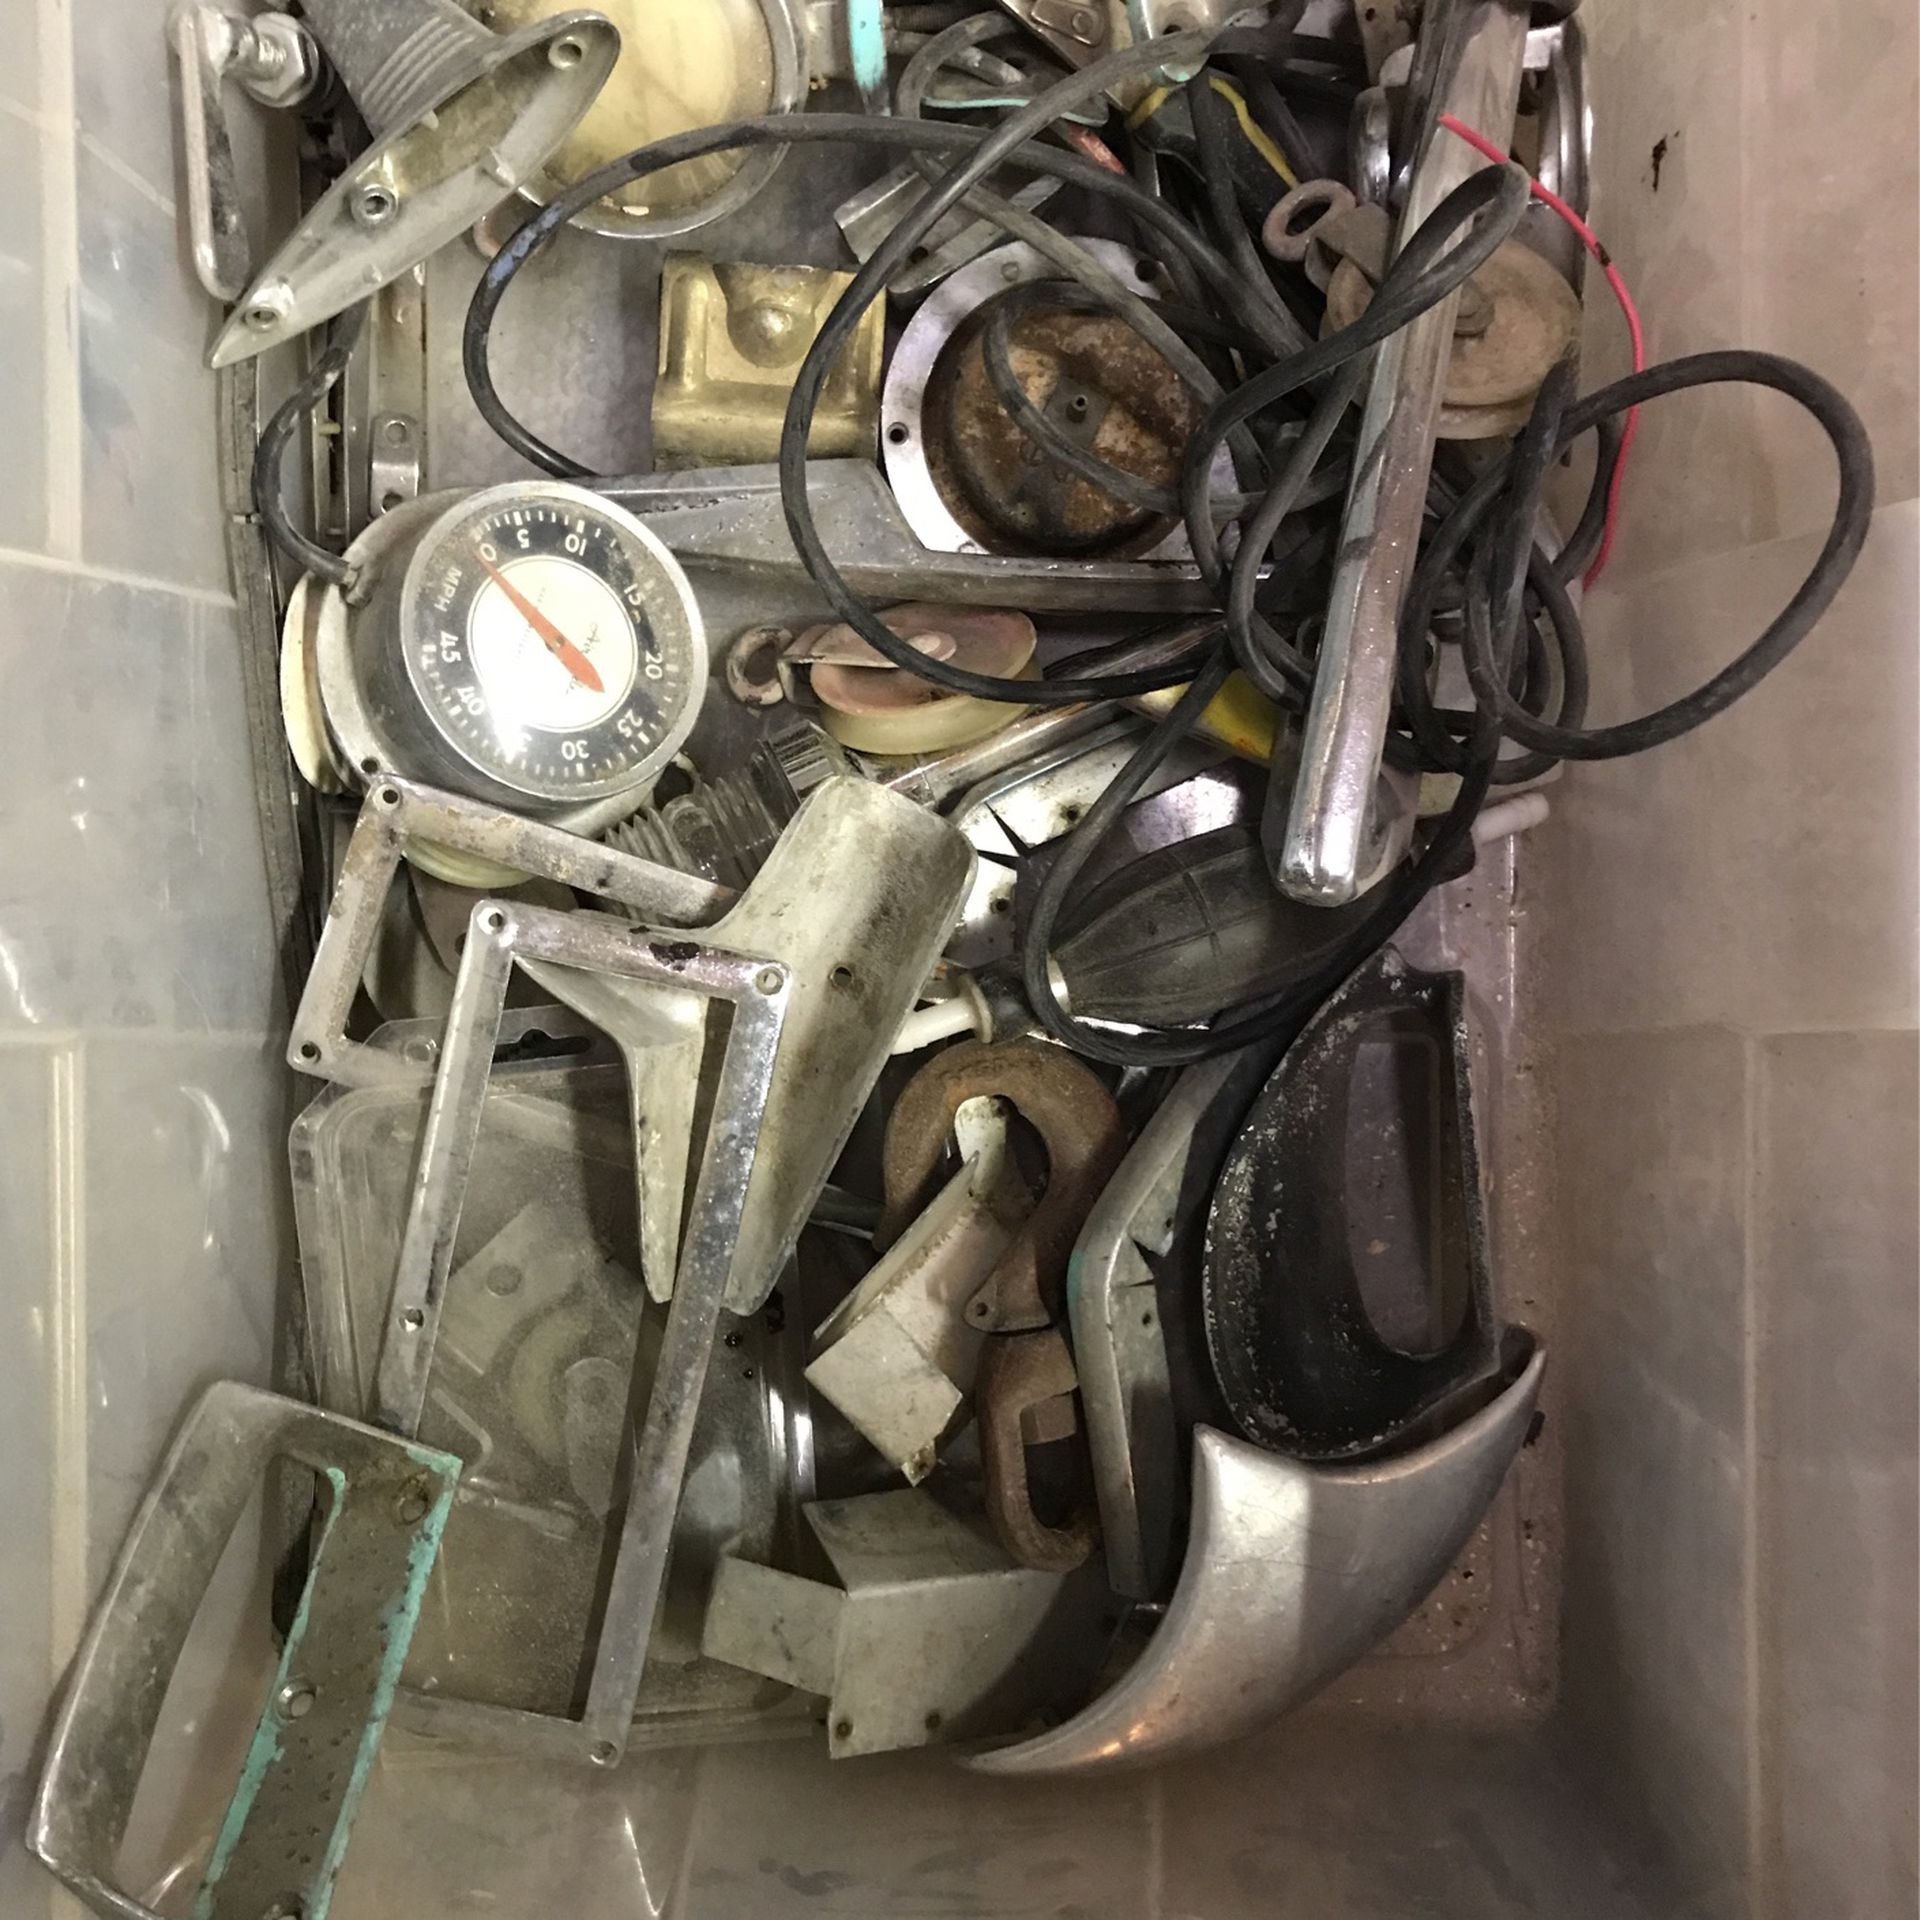 Photo Over 60 Items Misc. Vintage Boat Hardware